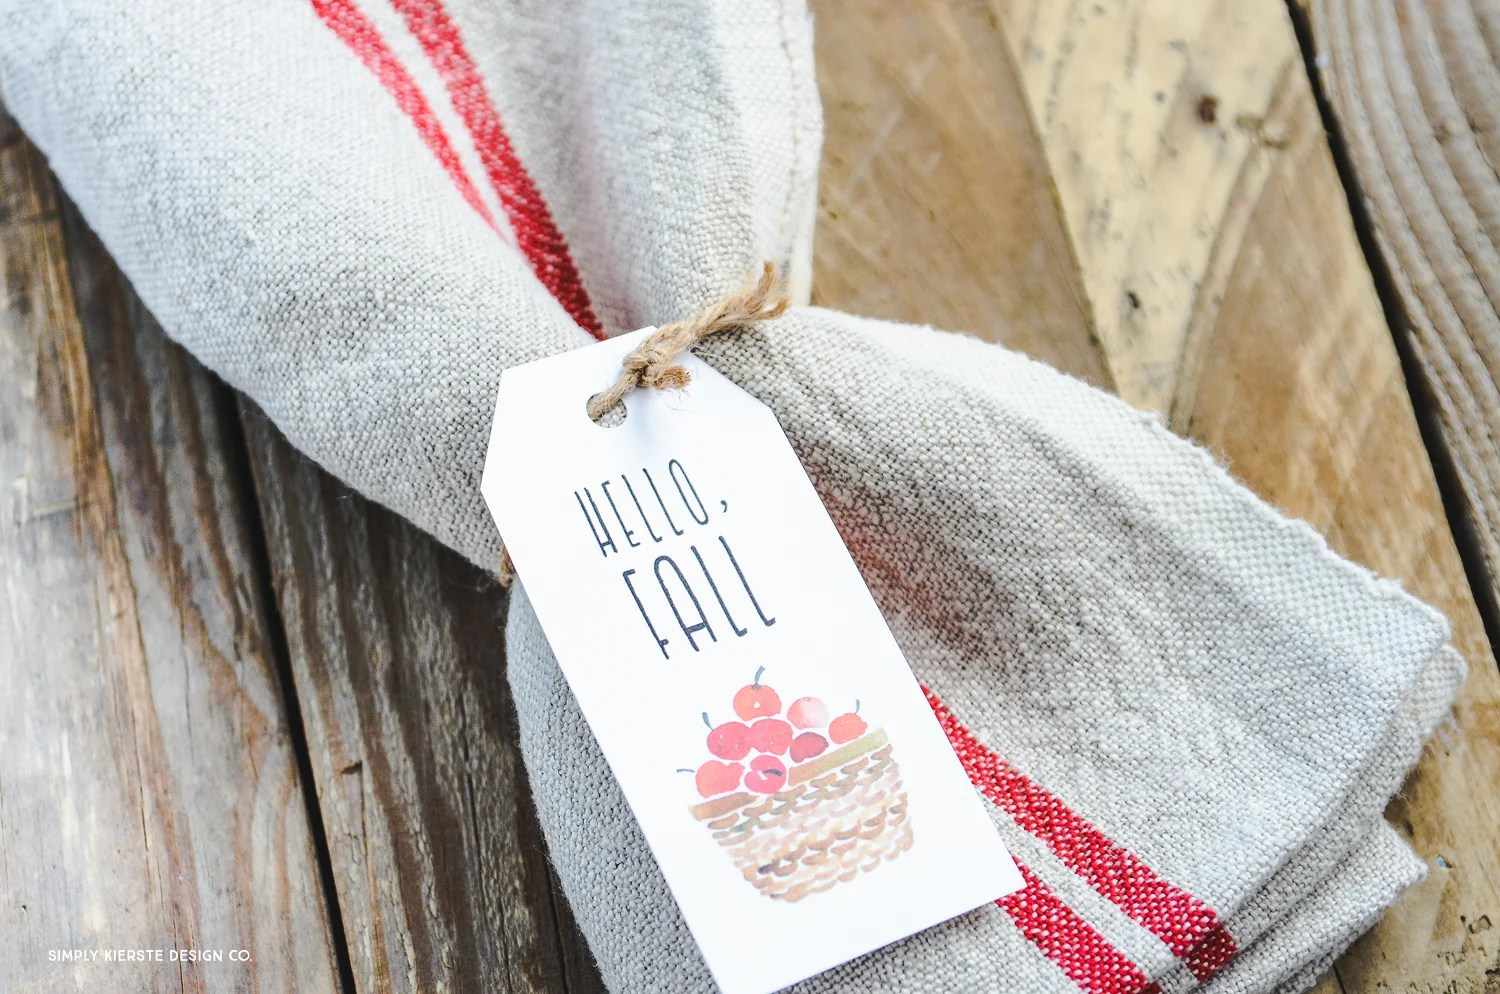 Vintage Fall Gift Tags | Hostess Gifts | oldsaltfarm.com